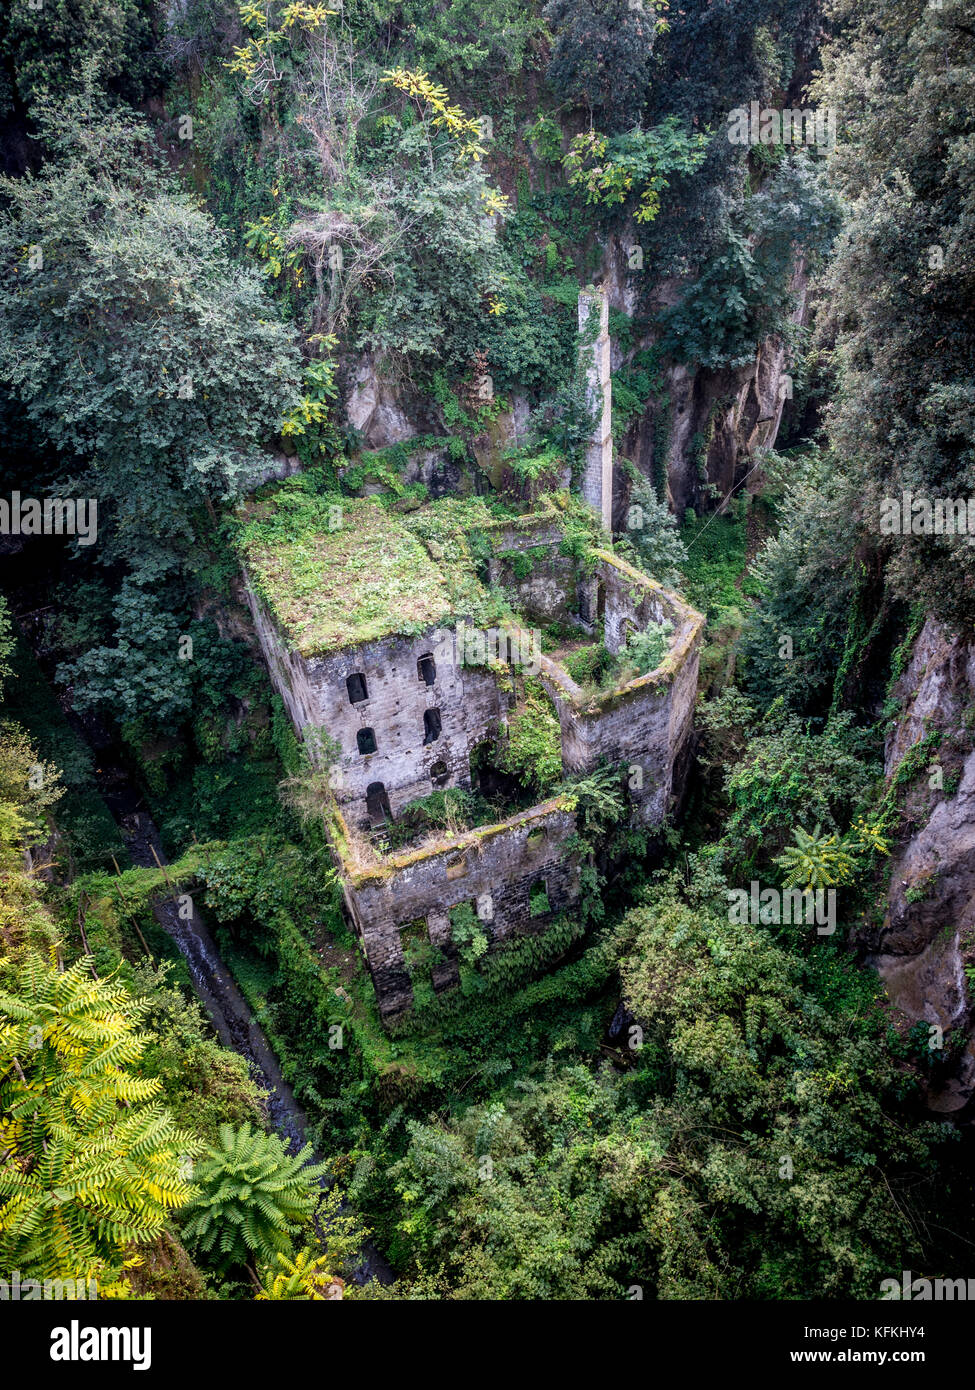 Valle dei Mulini. Ruins of a disused flour mill in a gorge. Sorrento. Italy. - Stock Image